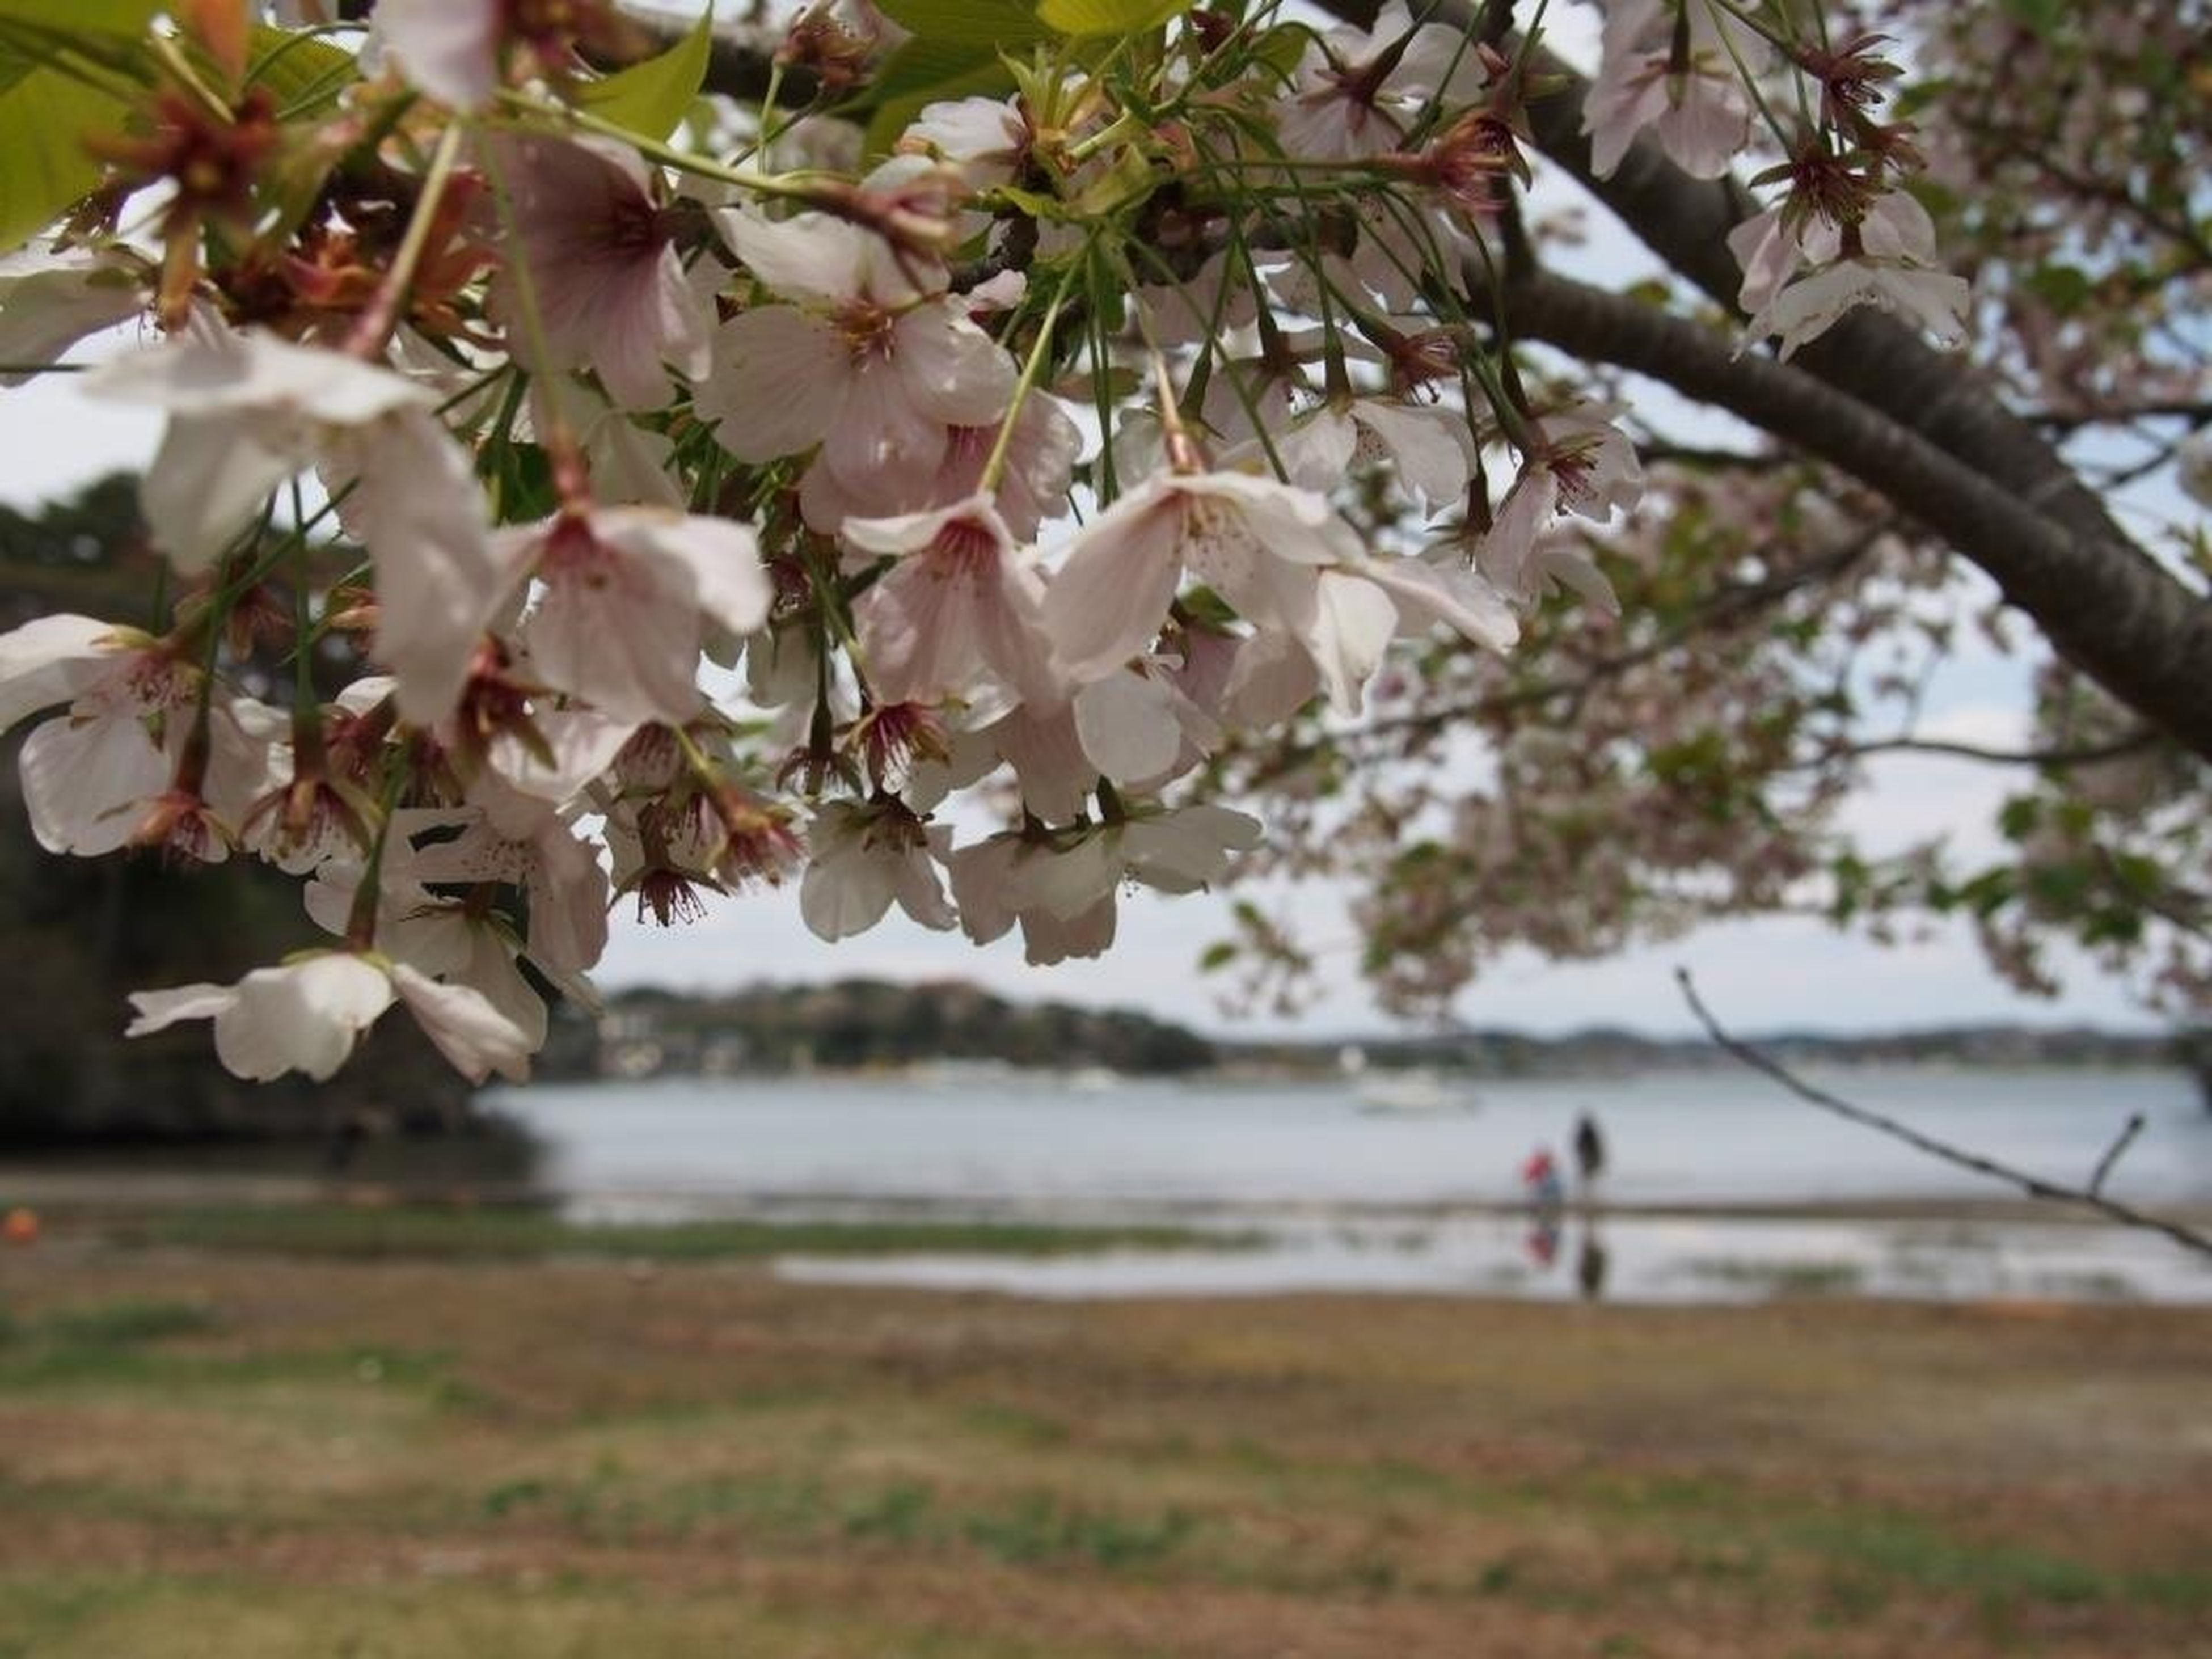 flower, tree, branch, freshness, growth, beauty in nature, nature, cherry blossom, focus on foreground, fragility, blossom, cherry tree, water, day, springtime, outdoors, park - man made space, in bloom, white color, twig